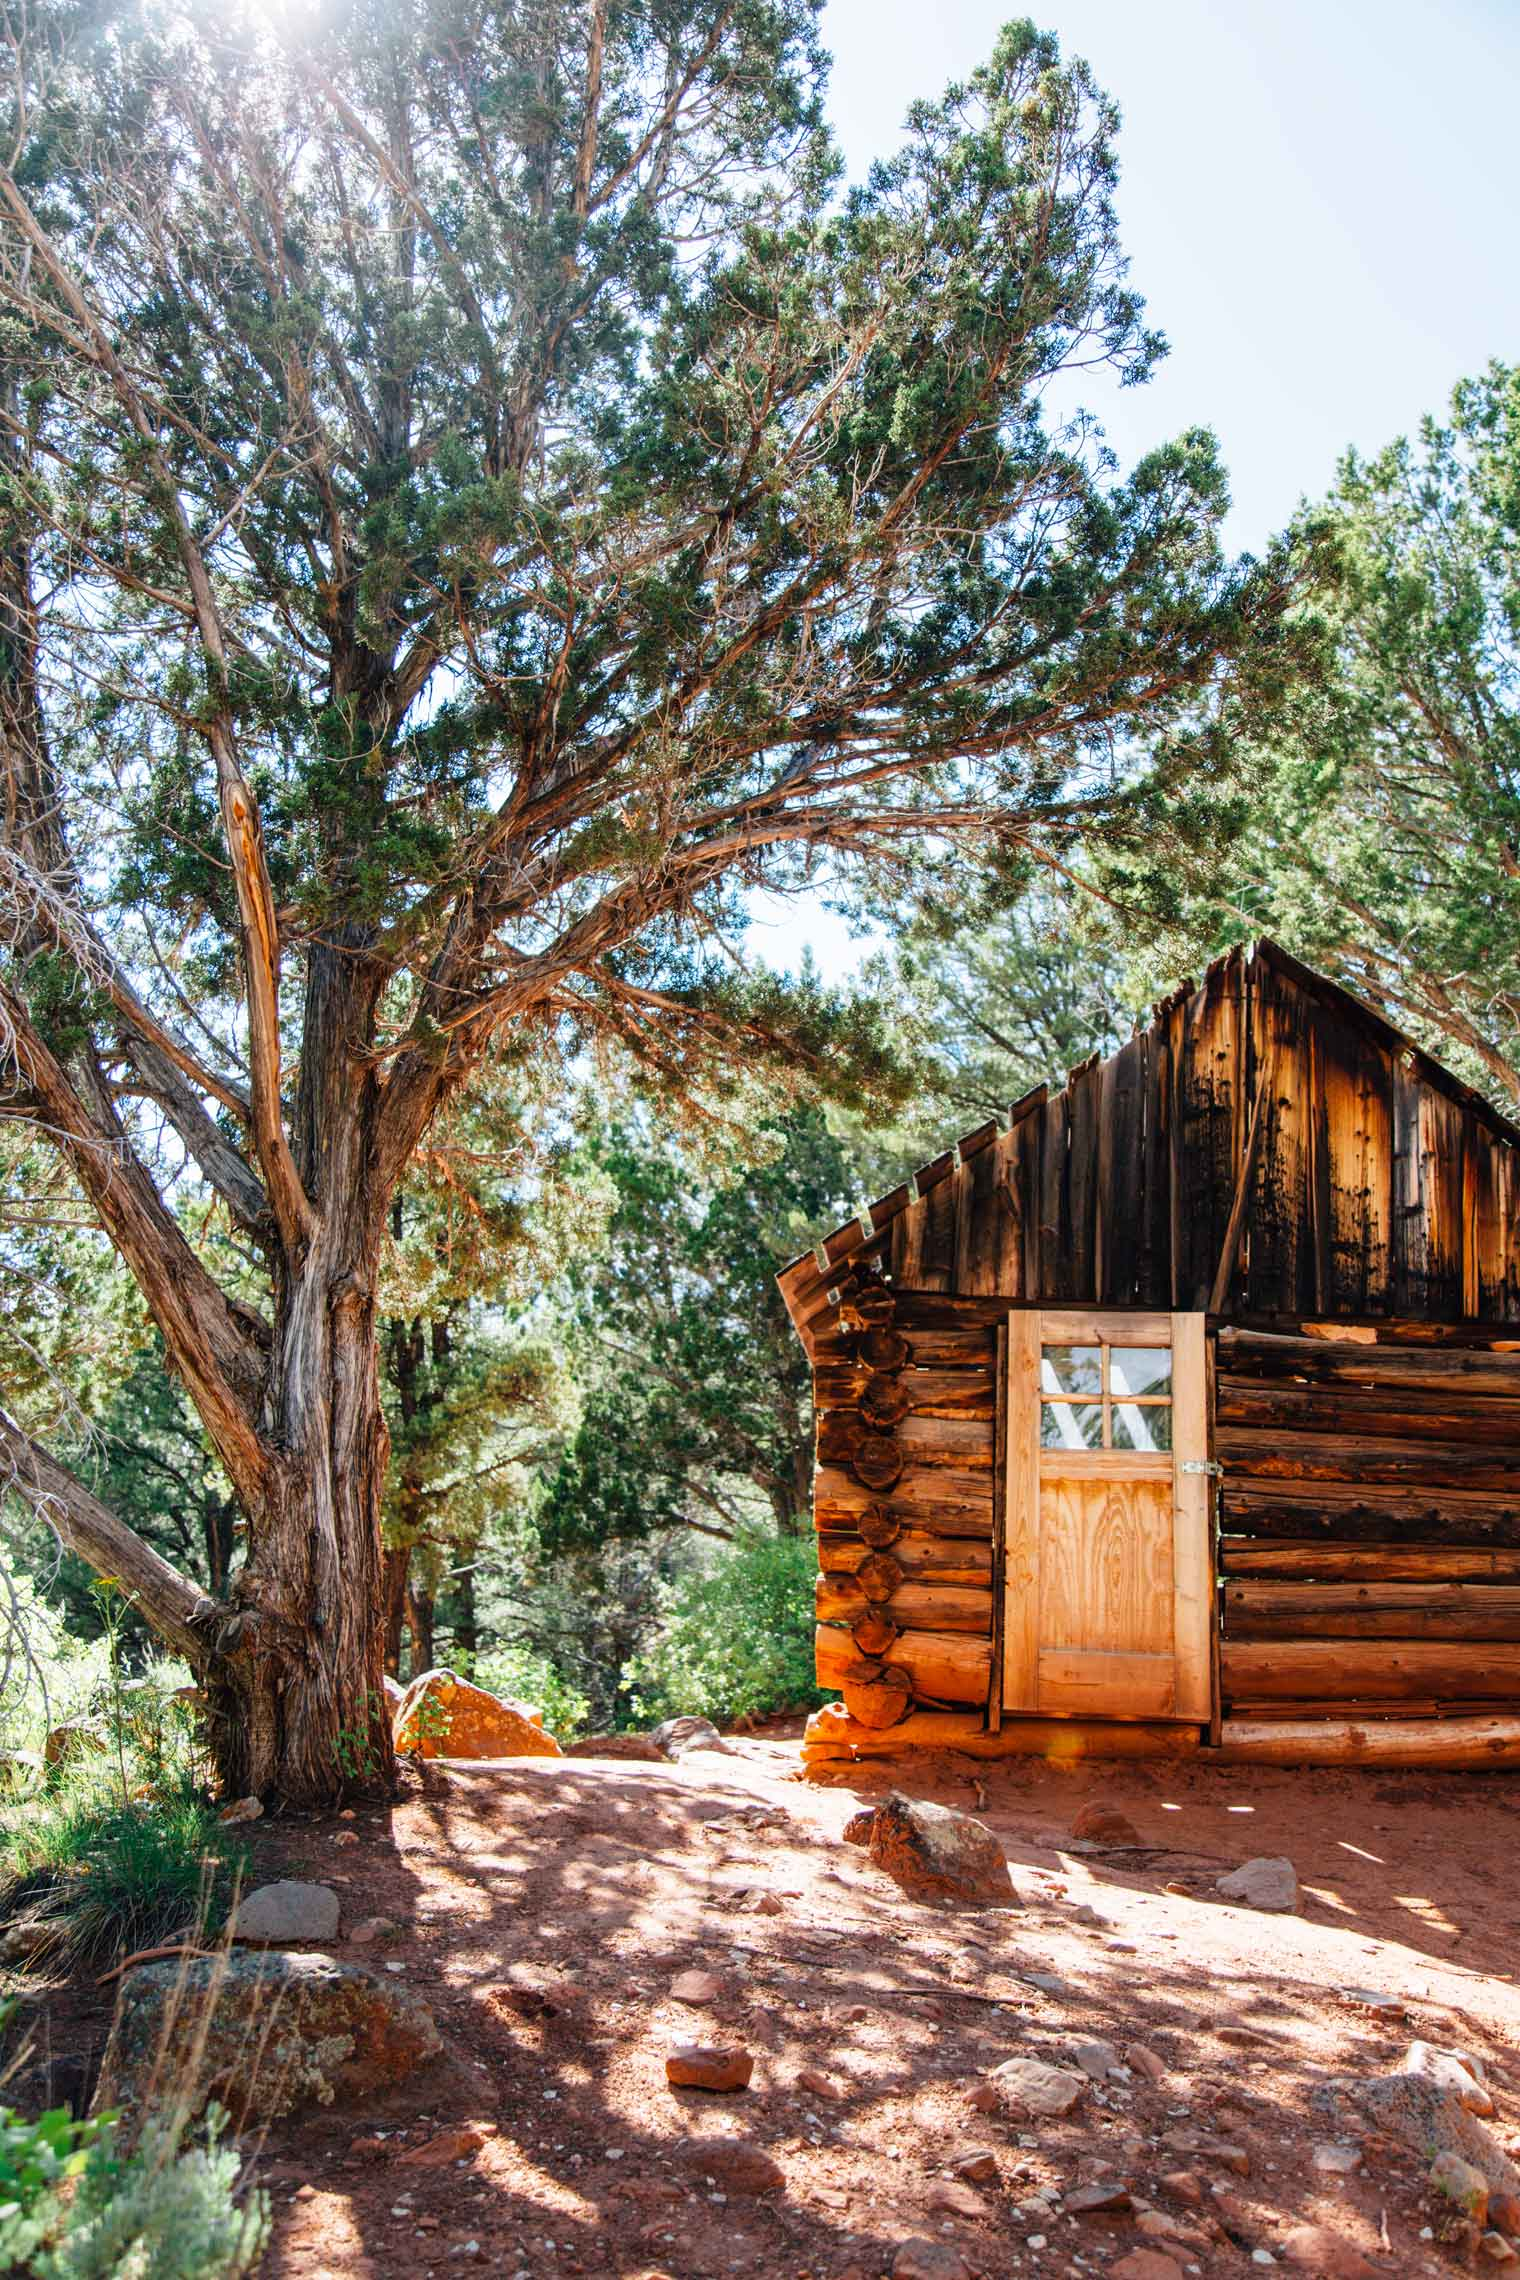 A wooden cabin in Kolob Canyon